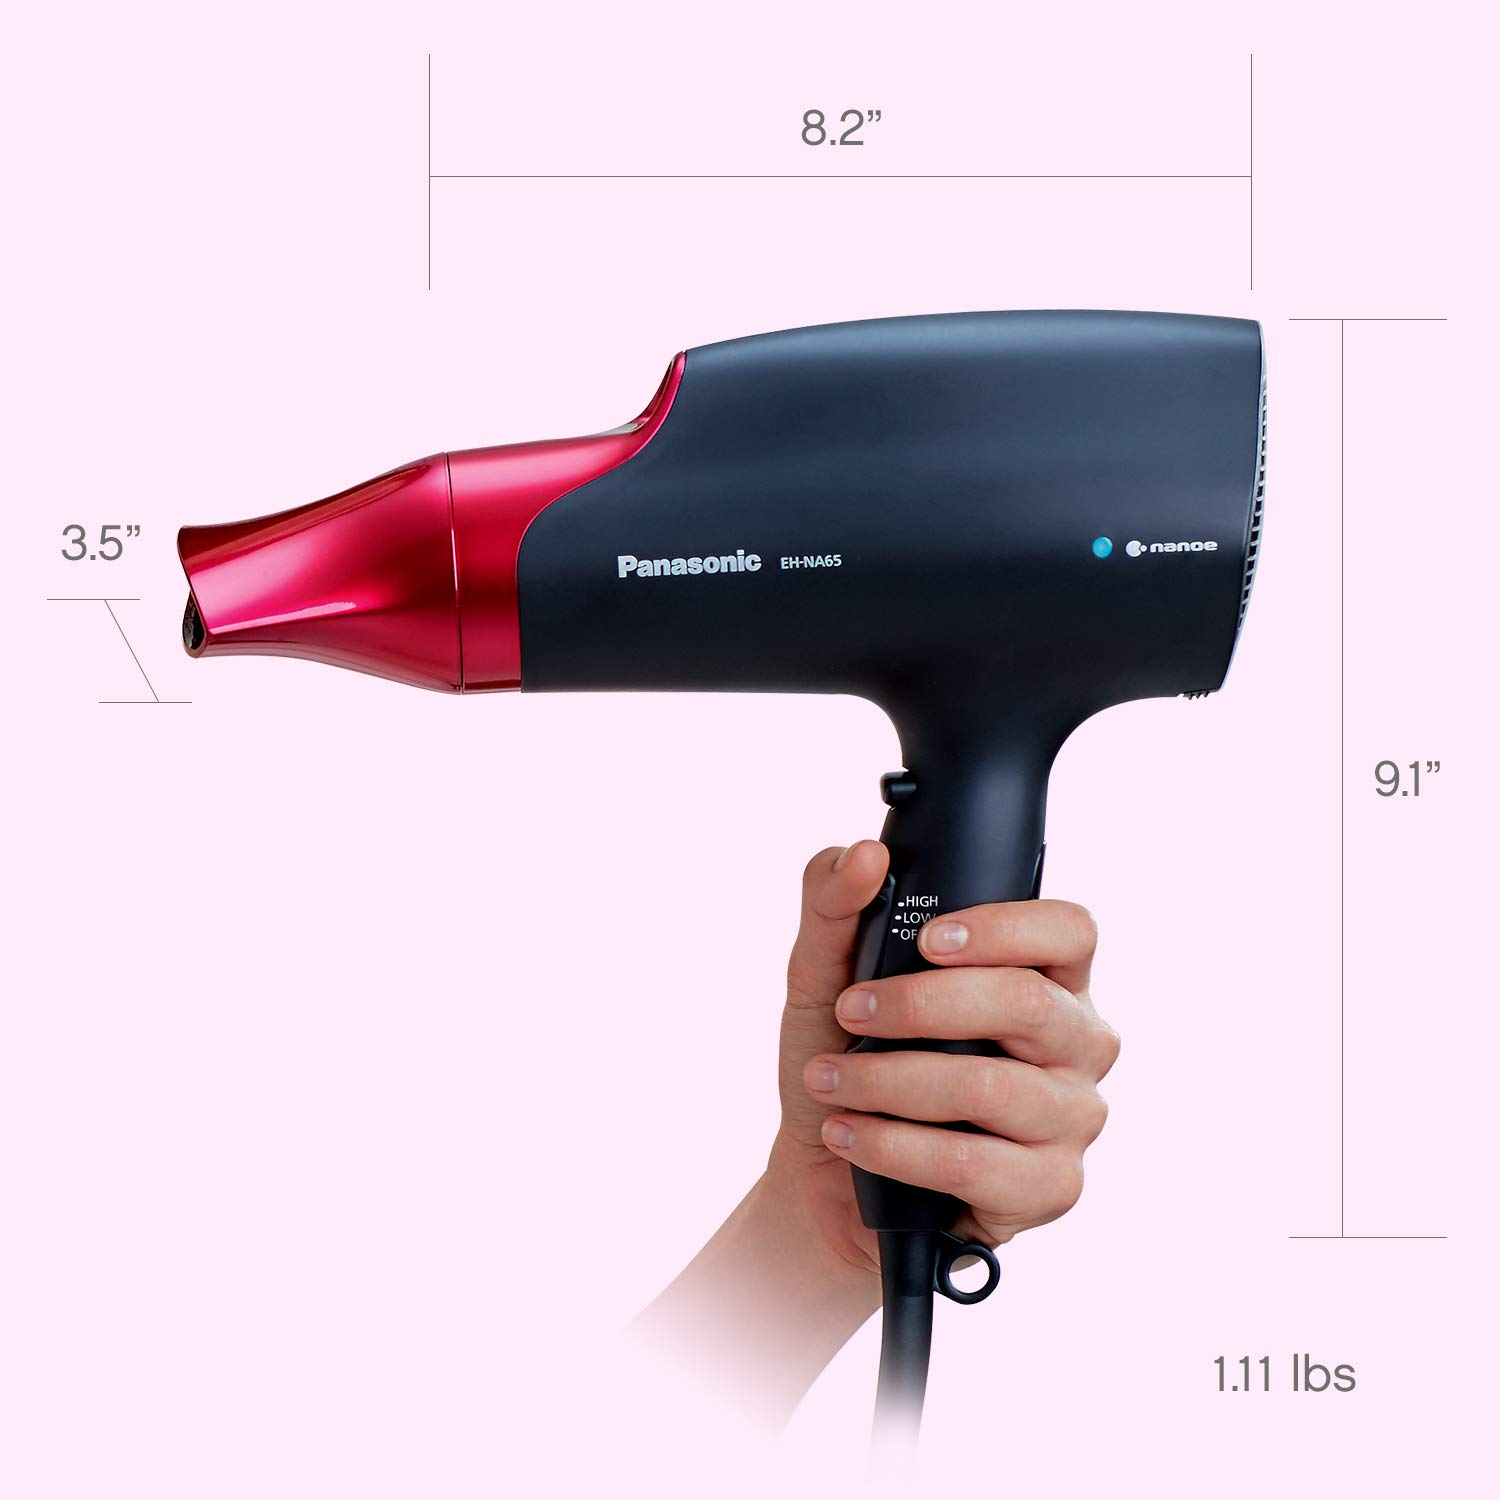 Panasonic EH-NA65-K nanoe Dryer, Professional-Quality with 3 attachments Including Quick Blow Dry Nozzle for Smooth, Shiny Hair, Pink by Panasonic (Image #10)